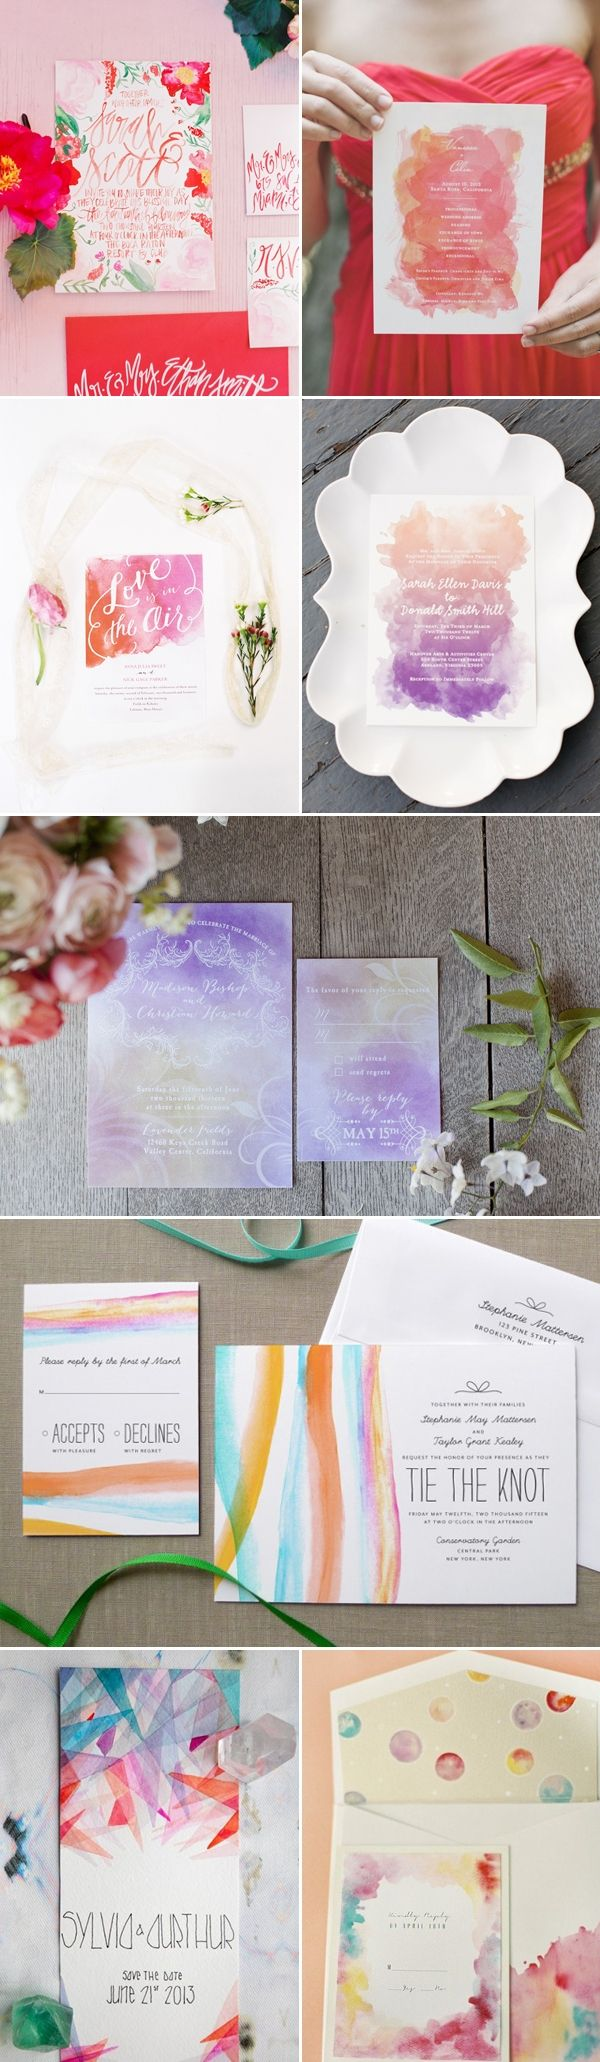 29 Watercolor Wedding Invitation Ideas You Will